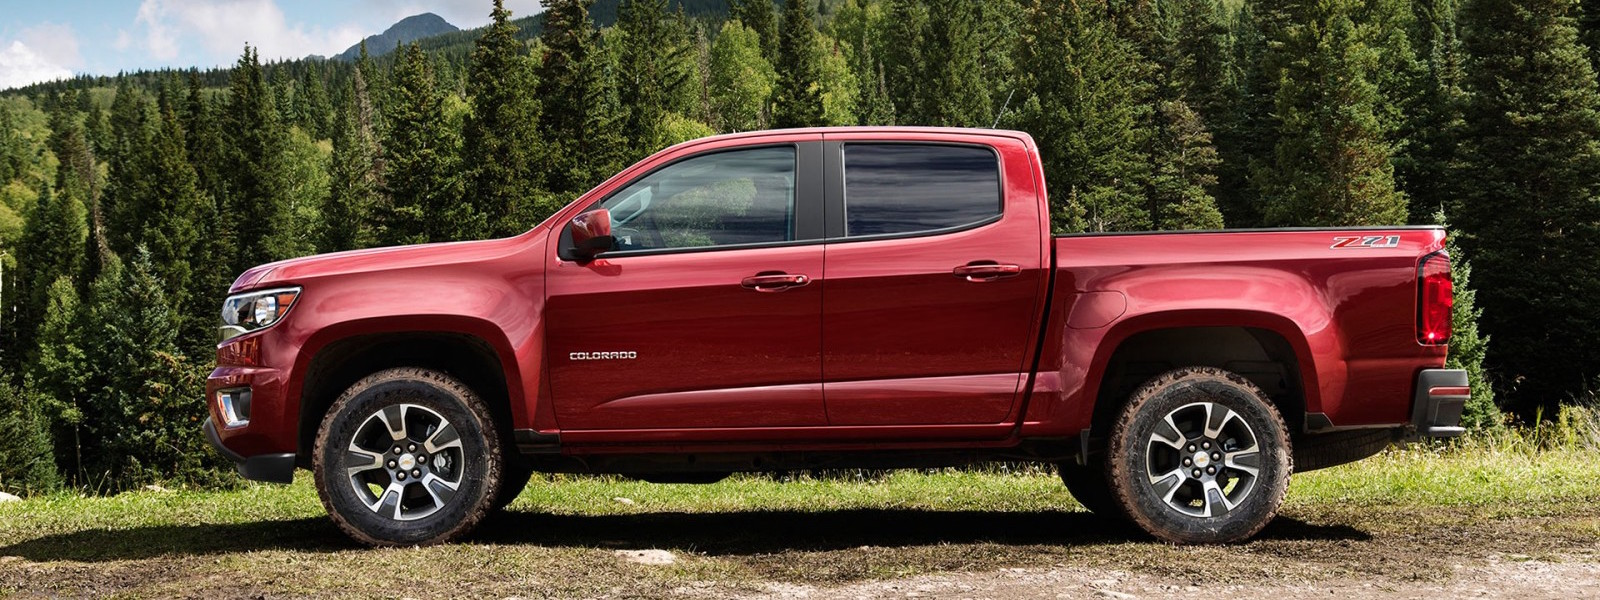 A red 2016 Chevy Colorado is shown from the side in front of pine trees while off-roading near Albany, NY.